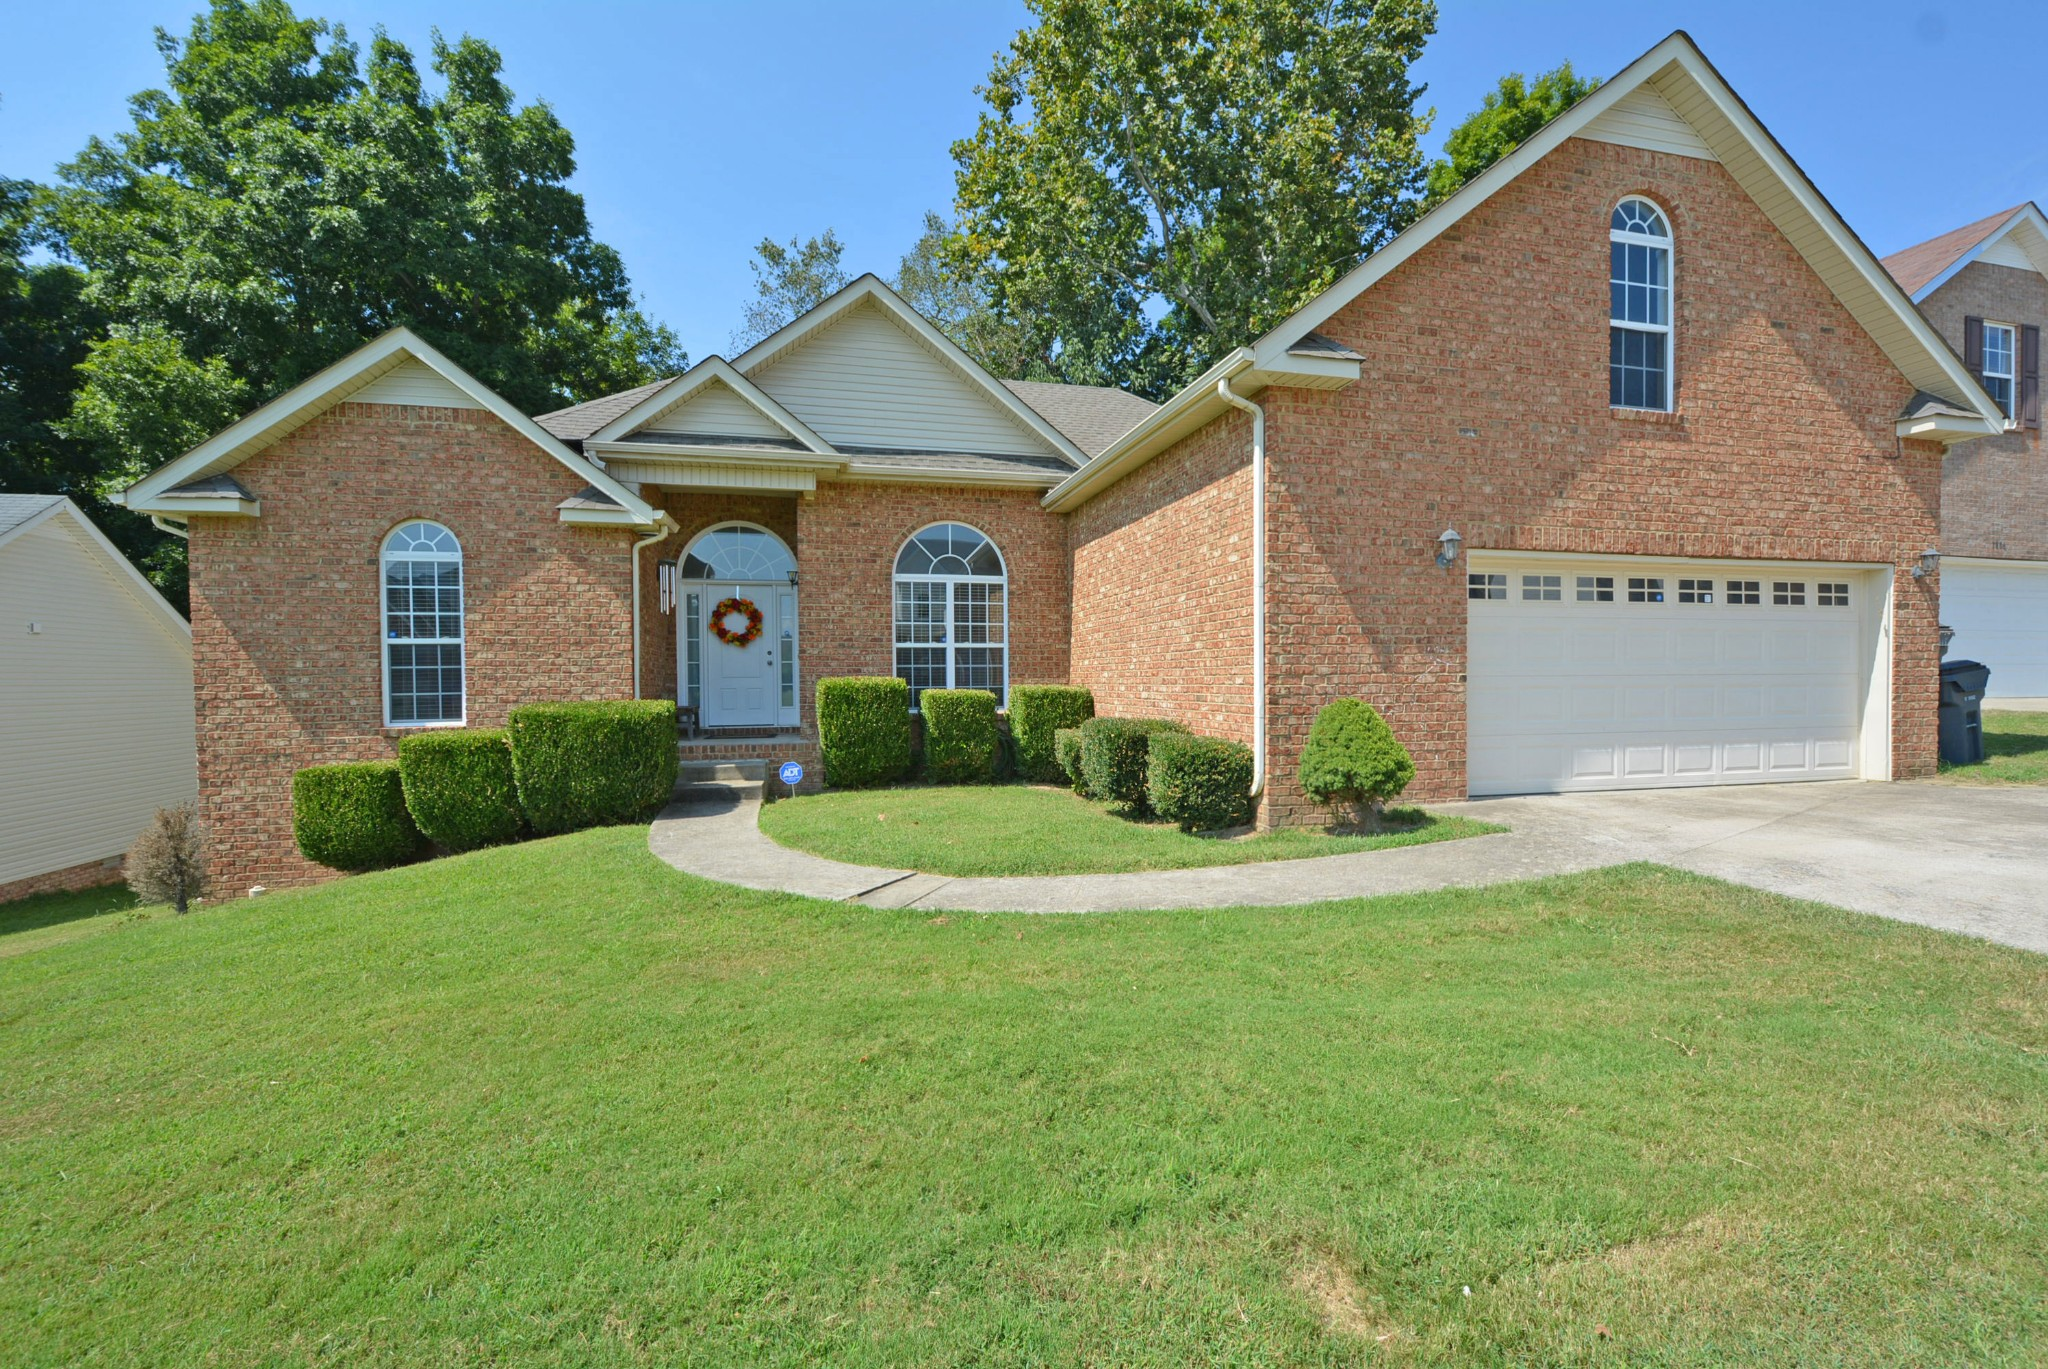 1804 Patricia Dr, Clarksville, TN 37040 - Clarksville, TN real estate listing